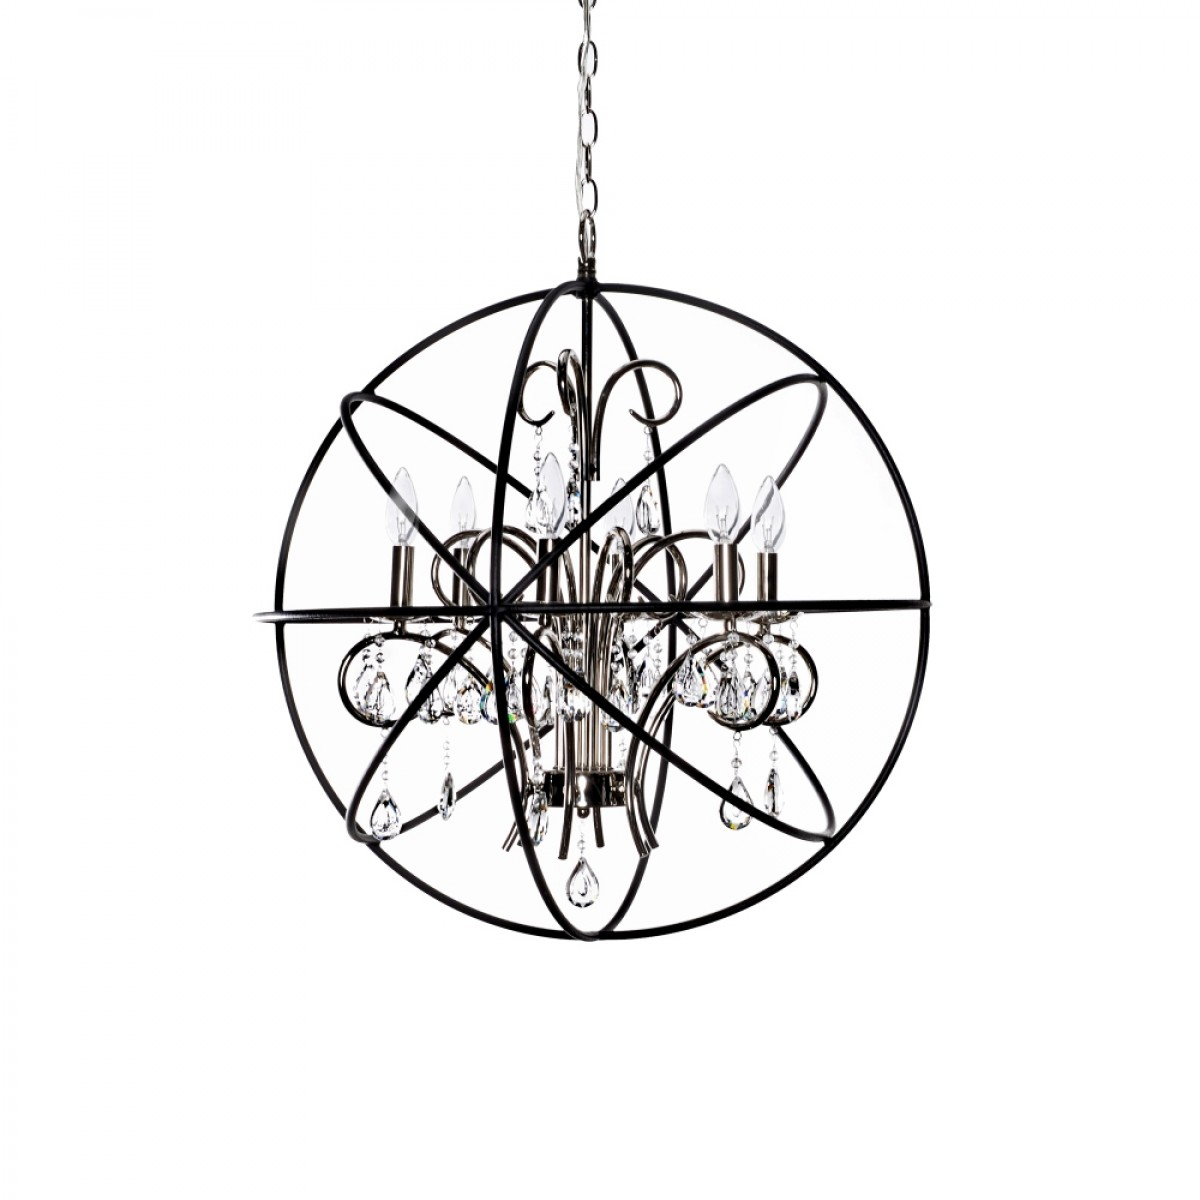 Astounding unique design of orbit chandelier with iron or stainless for ceiling lighting decorating ideas